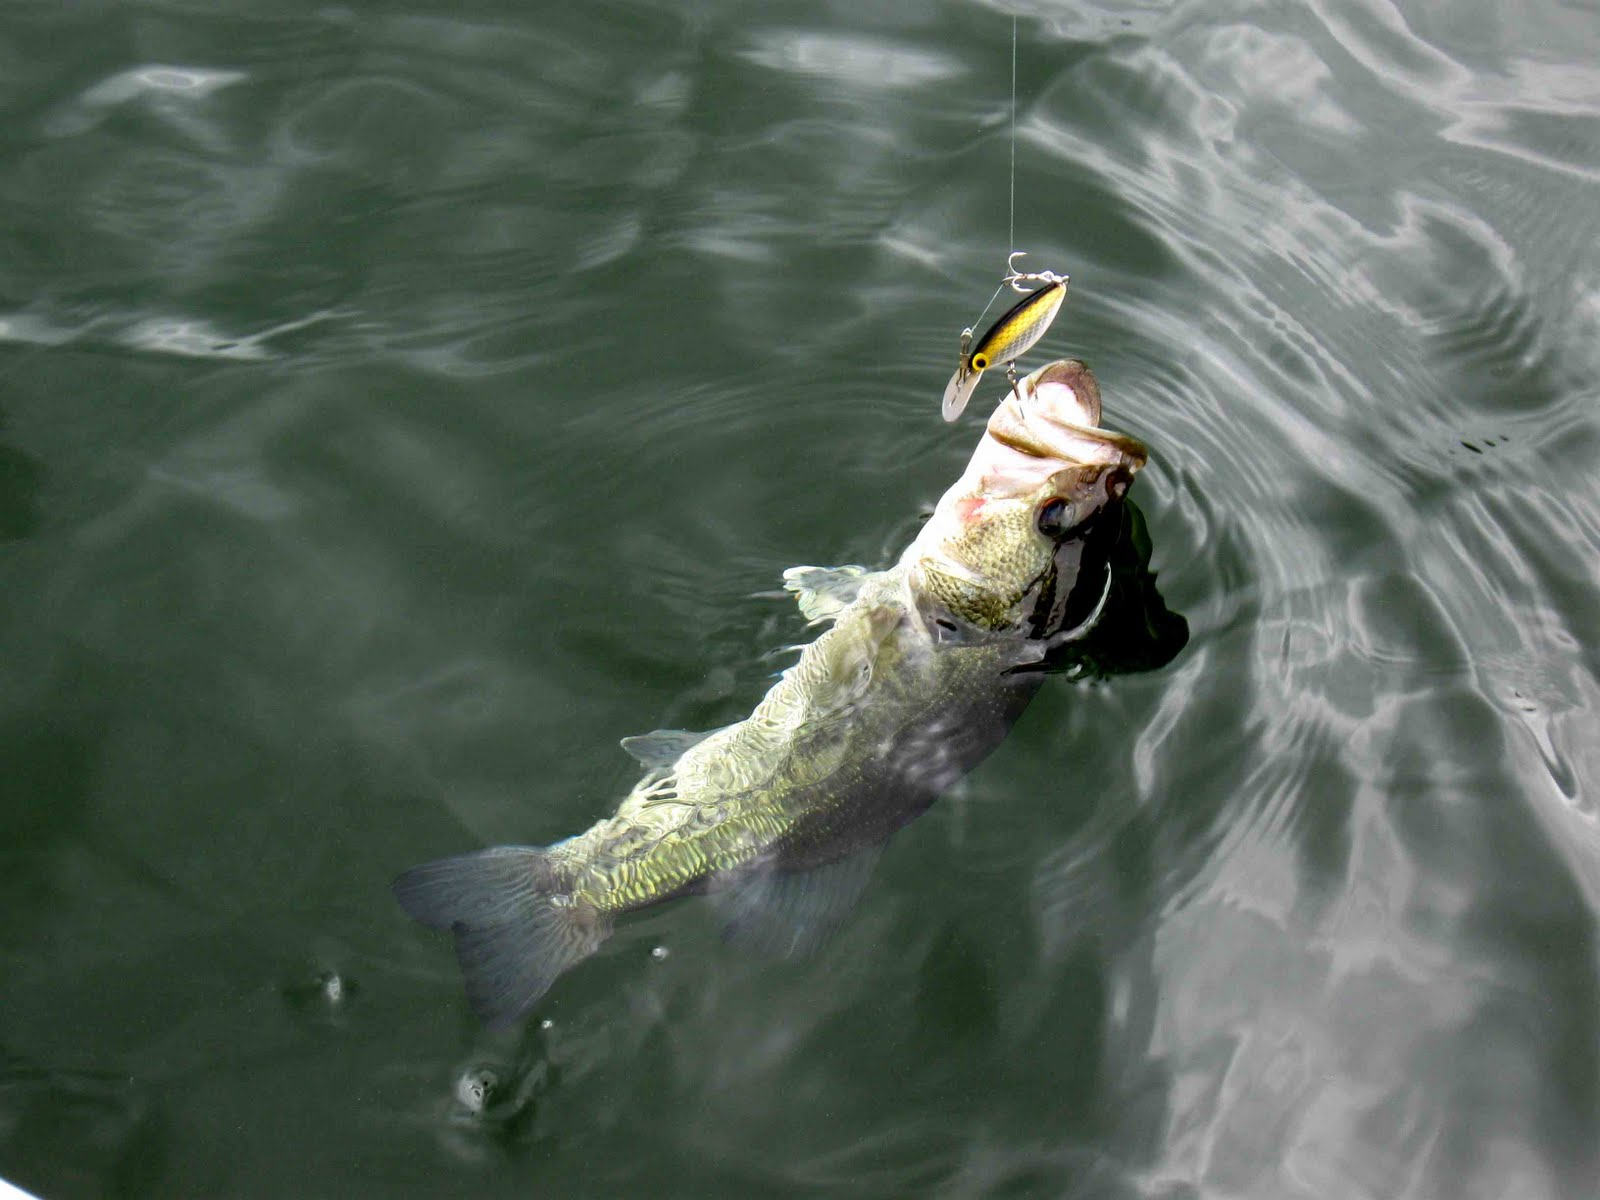 Largemouth Bass Hd Wallpaper For Desktop Largemouth bass 1600x1200